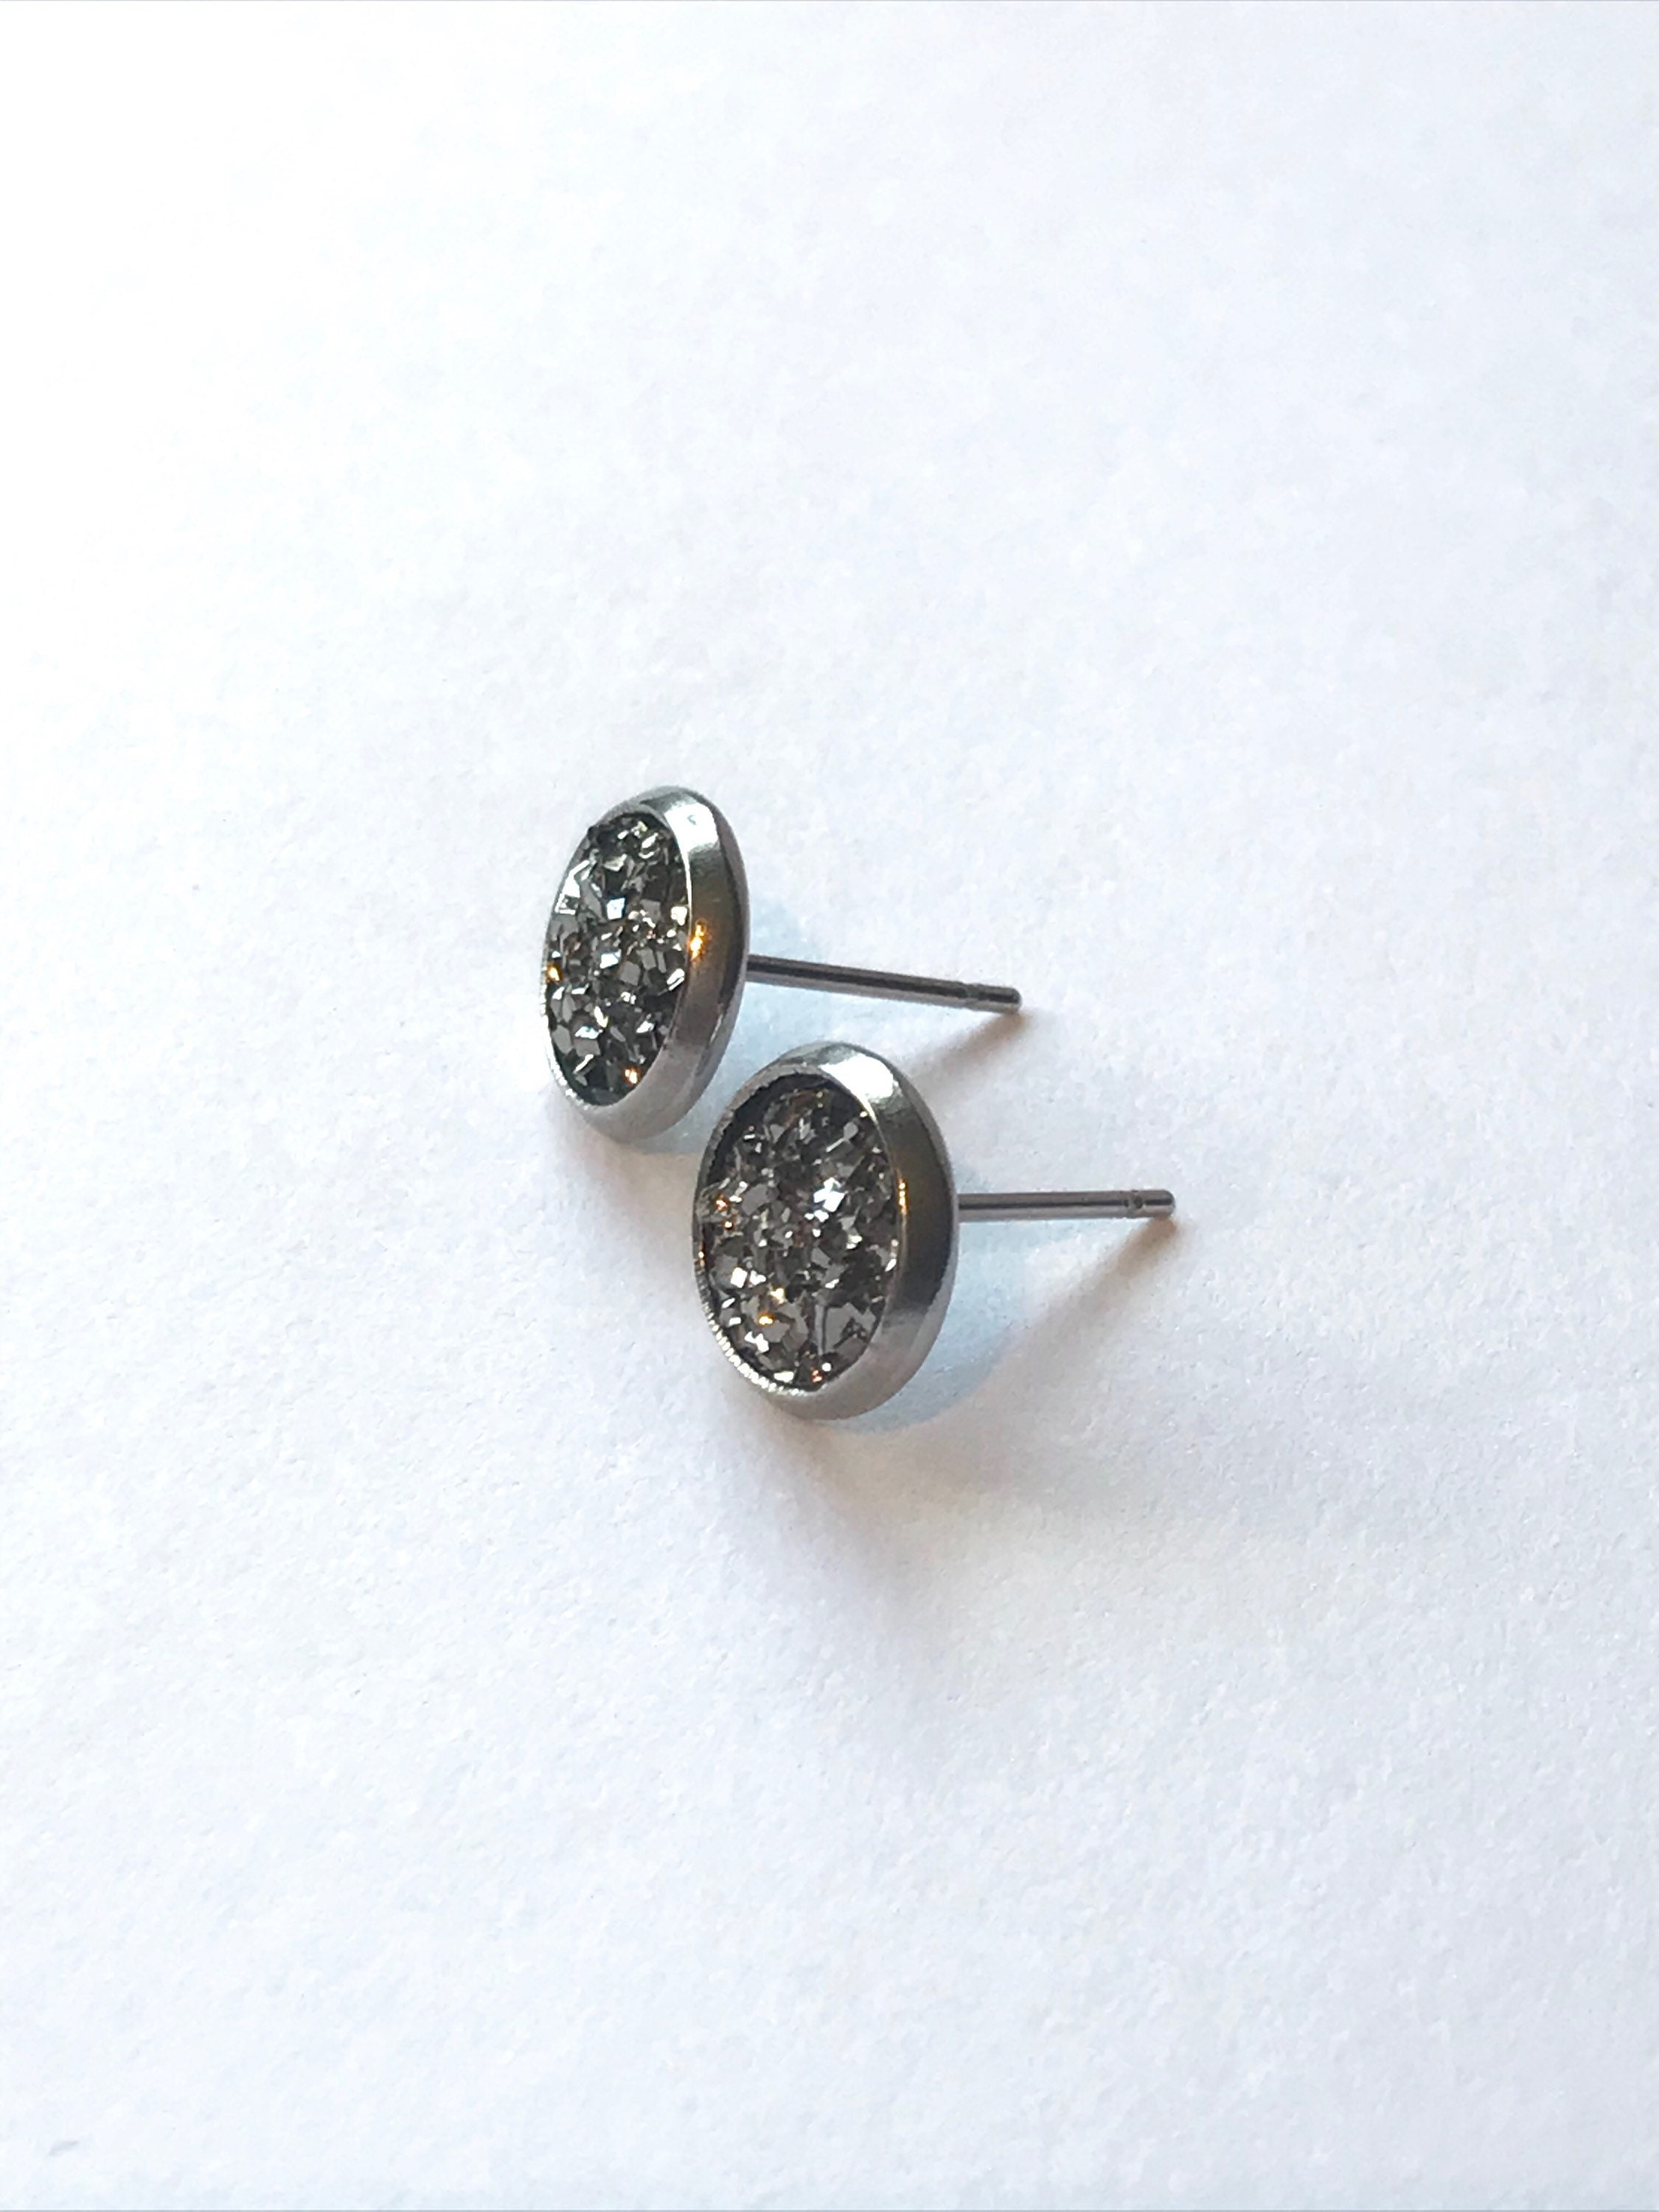 stud earrings women surgical tone men steel piercing for cross pin silver drop